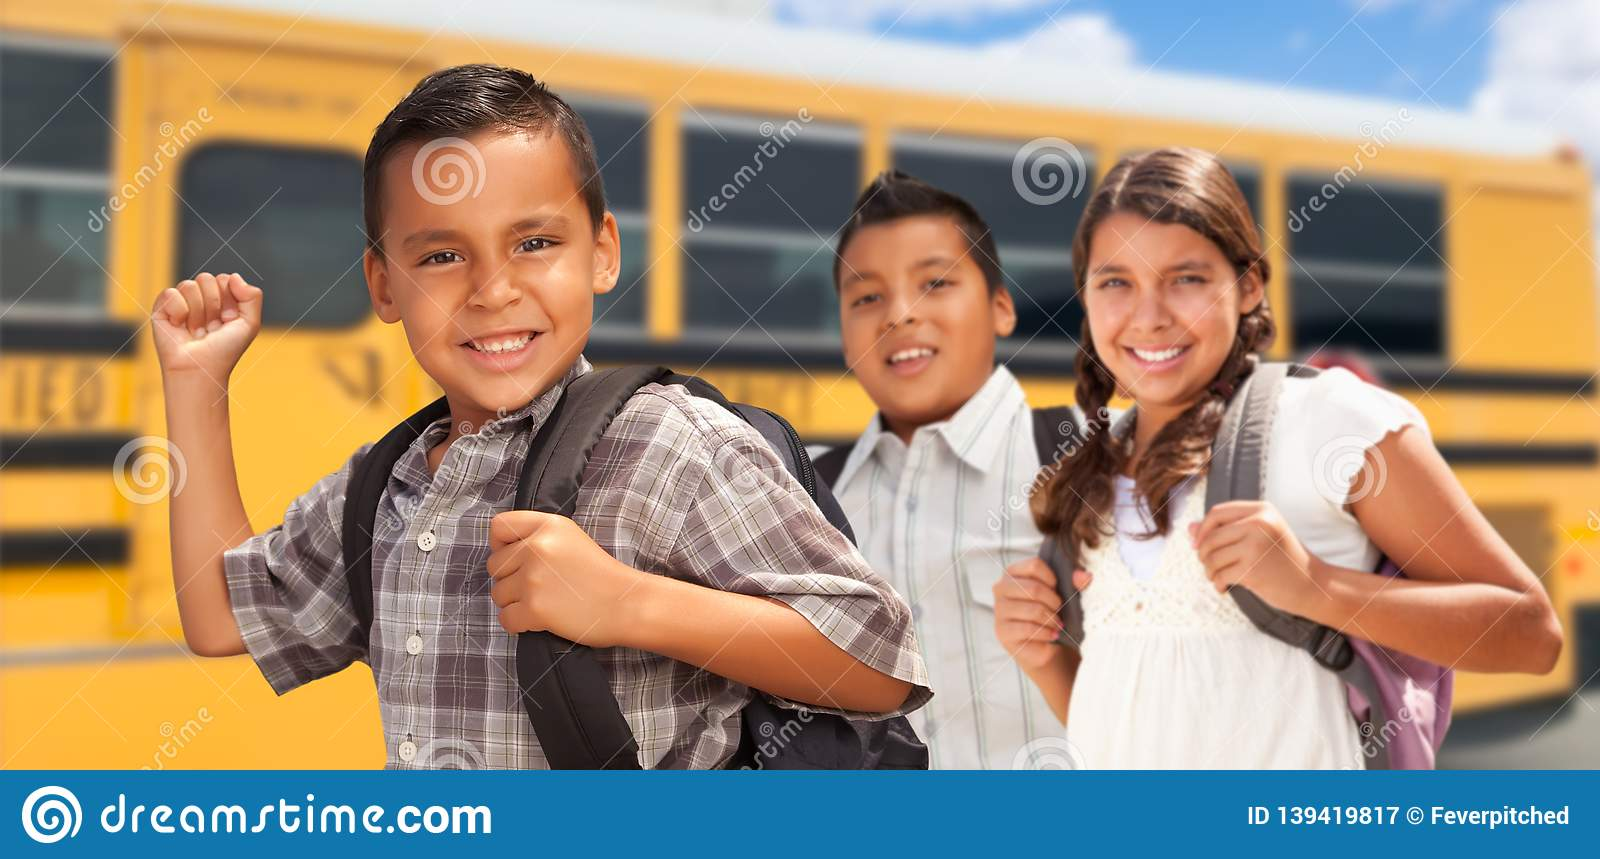 Excited Young Hispanic Boys and Girl Walking Near School Bus